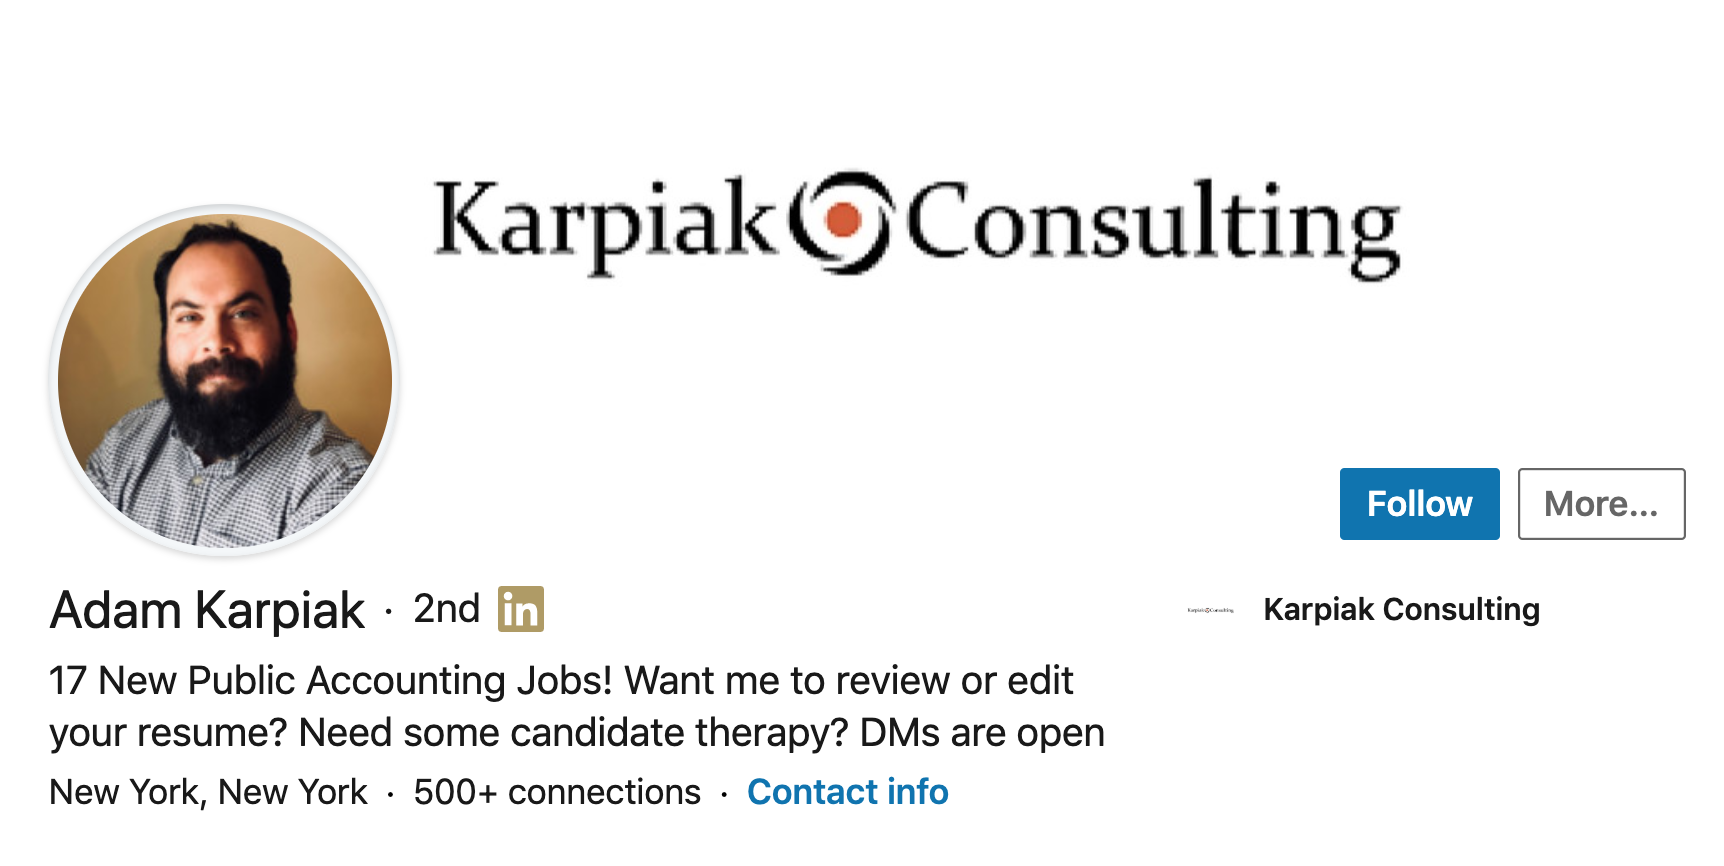 "Adam Karpiak (New York, New York)  ""17 New Public Accounting Jobs! Want me to review or edit your resume? Need some job therapy? DMs are open."""